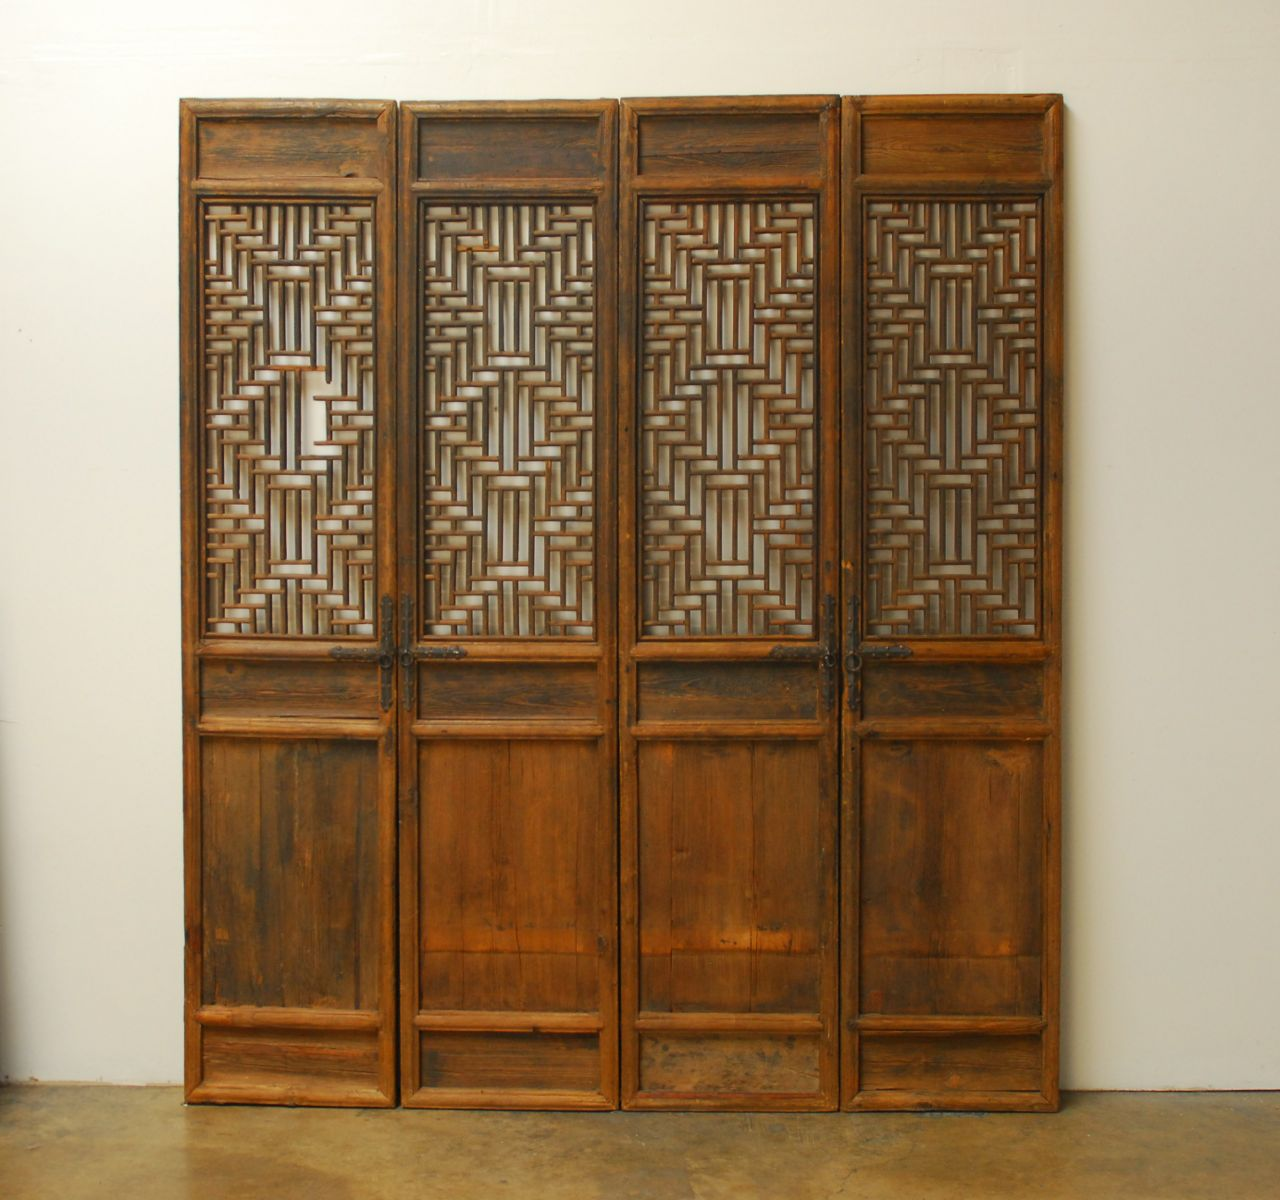 Exquisite Hand Carved Chinese Door Panels Featuring Intricate Geometric  Lattice Work. Constructed Using Mortise